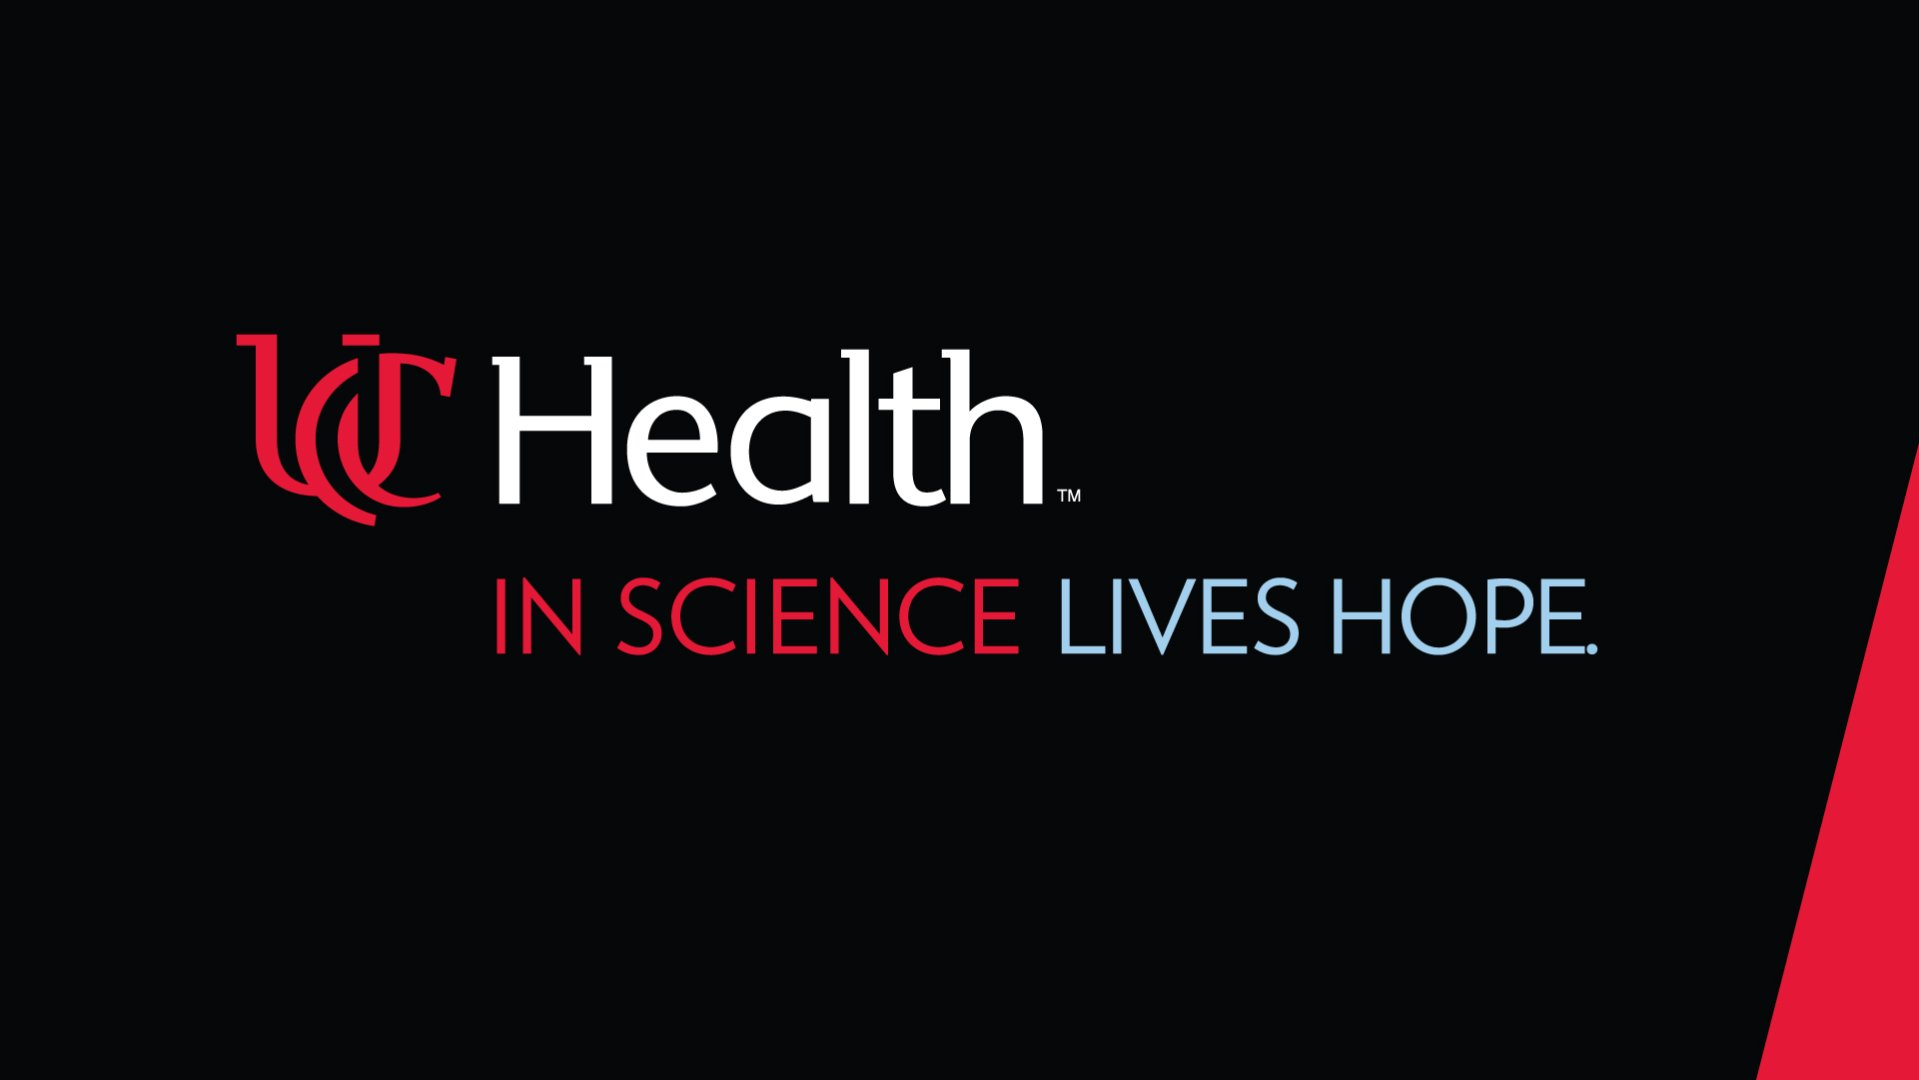 uc health - in science lives hope